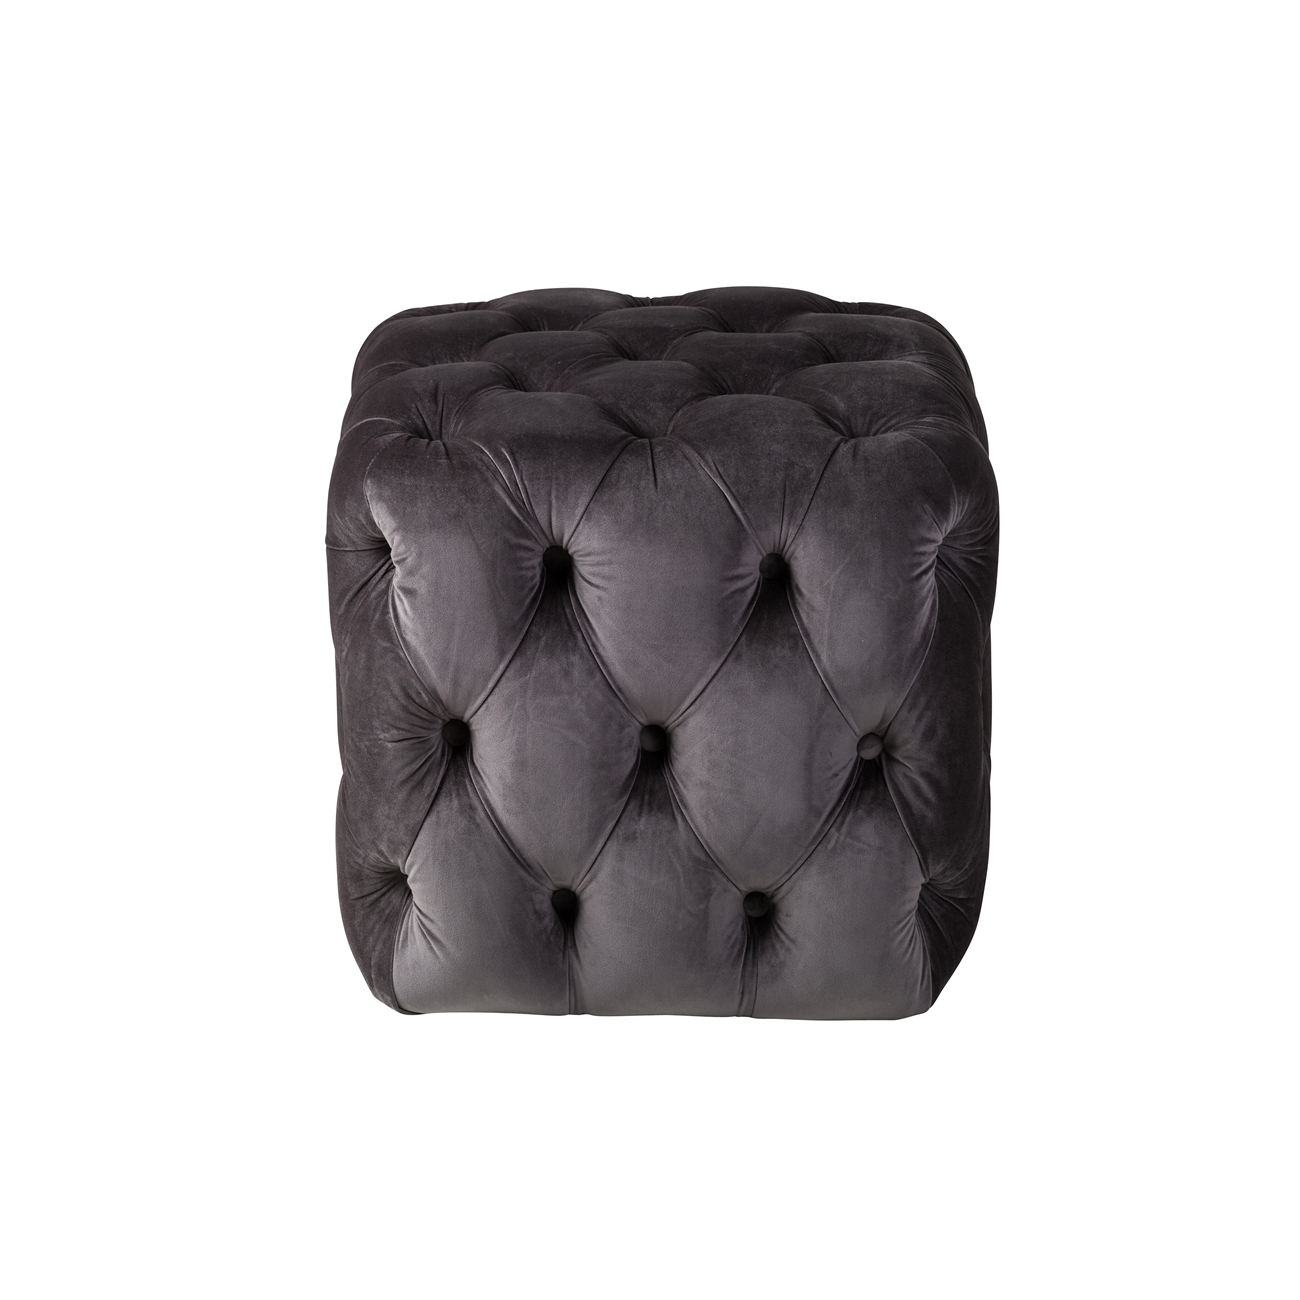 Remarkable Grace Tufted Ottoman In Plum Grey Ncnpc Chair Design For Home Ncnpcorg